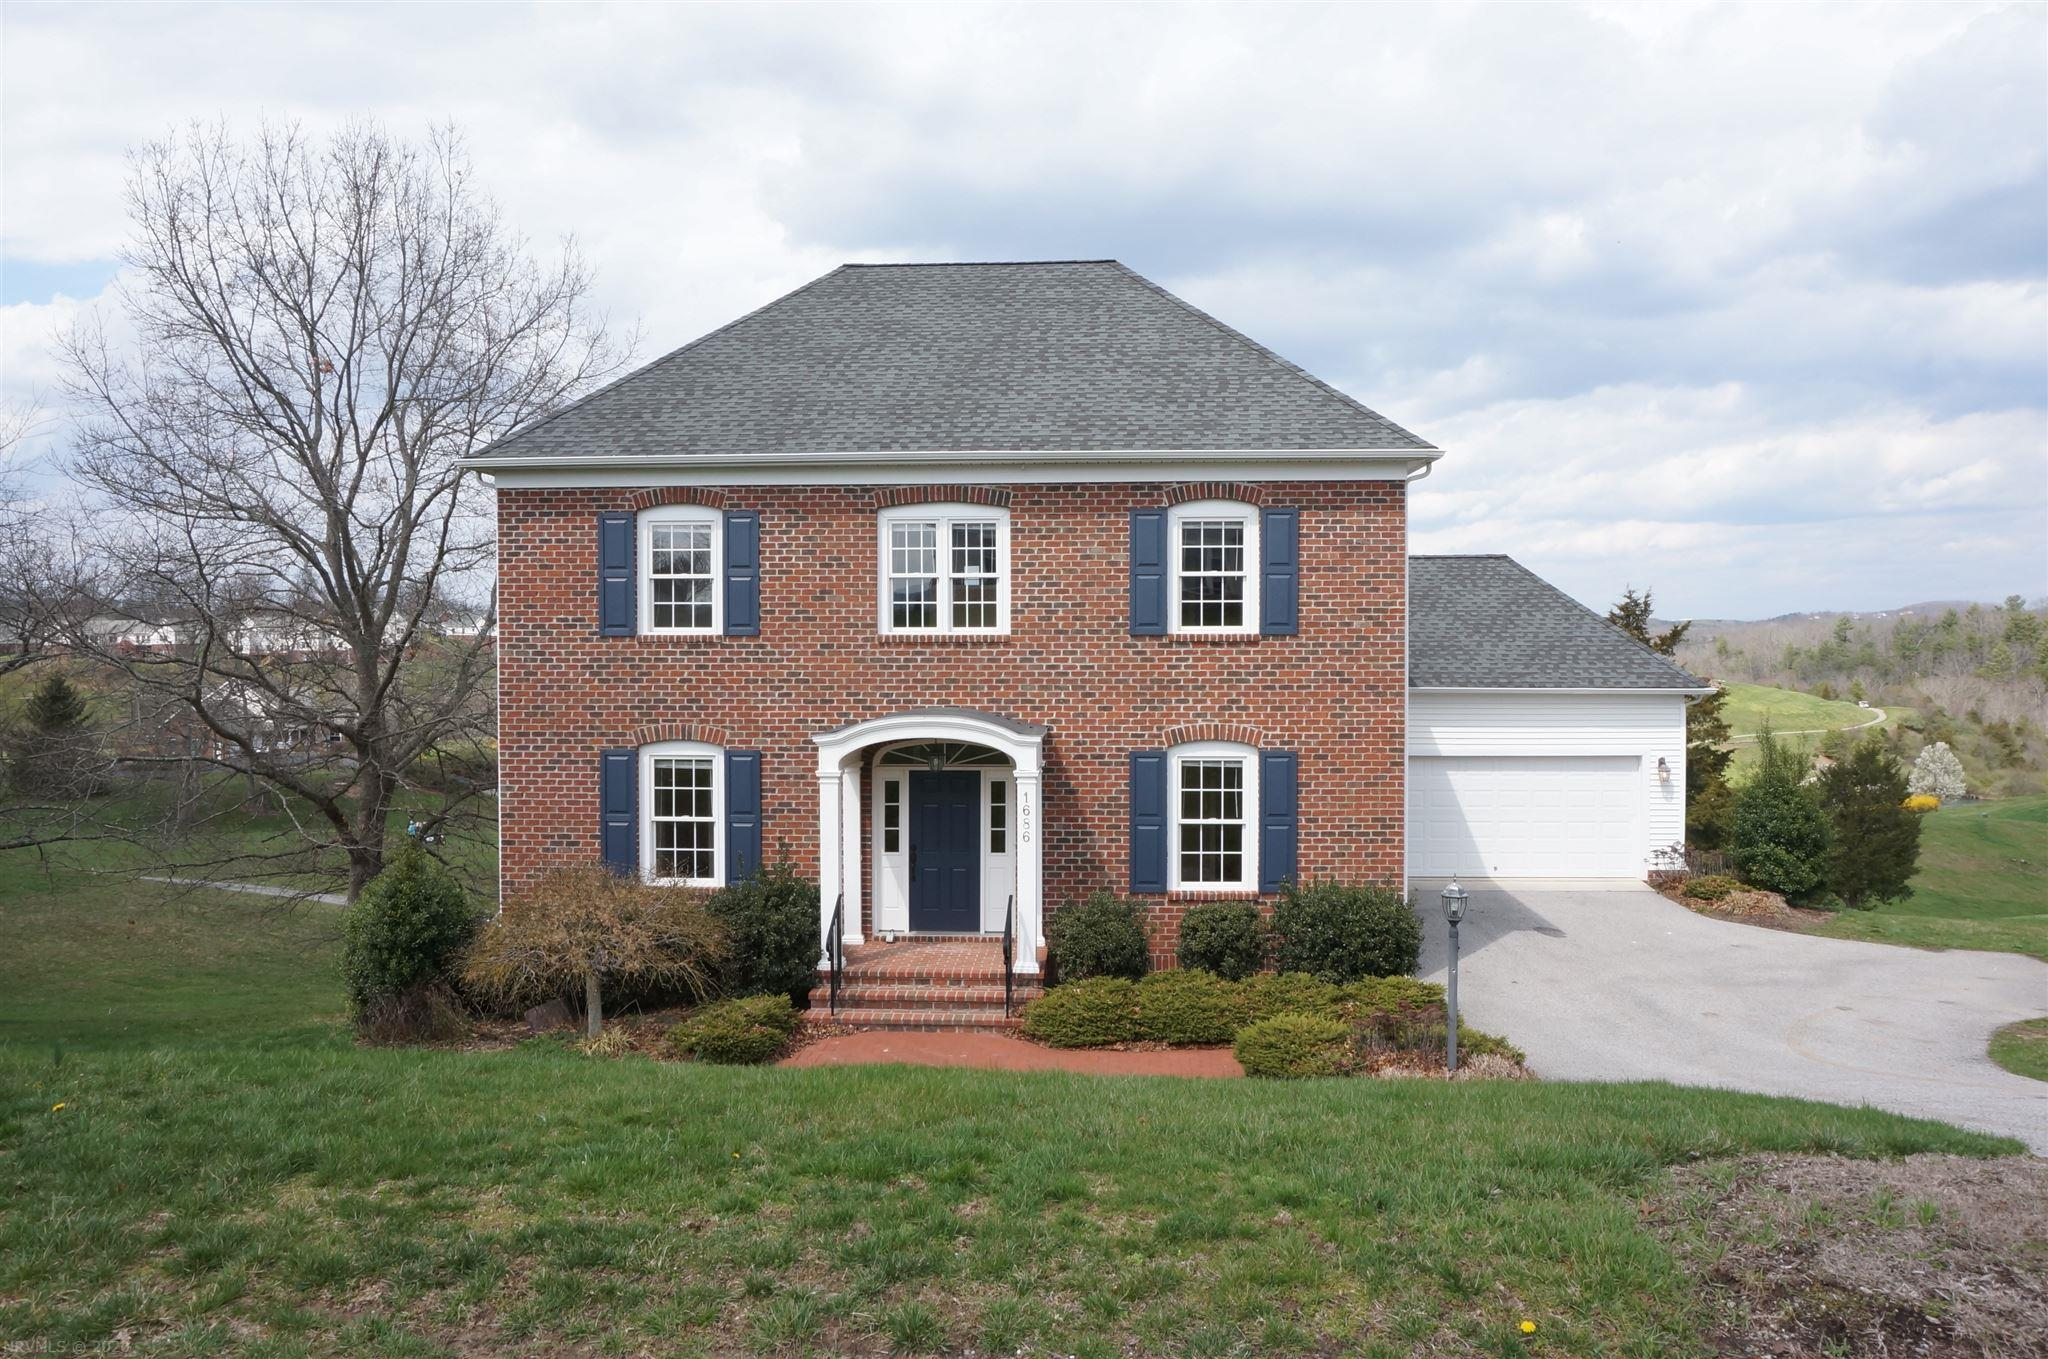 Fantastic brick colonial boasts open floor plan with lots of natural light. Excellent flow from garage to mudroom to huge kitchen. Main level flex room could be a study or a guest room since it has private access to the main level full bathroom. Awesome sitting area on second floor, generous bedroom sizes and luxurious master suite. Basement is plumbed for a bath and has lots of natural light - could be finished to provide additional space or left as is and used for storage, hobbies, gym, toys, etc...